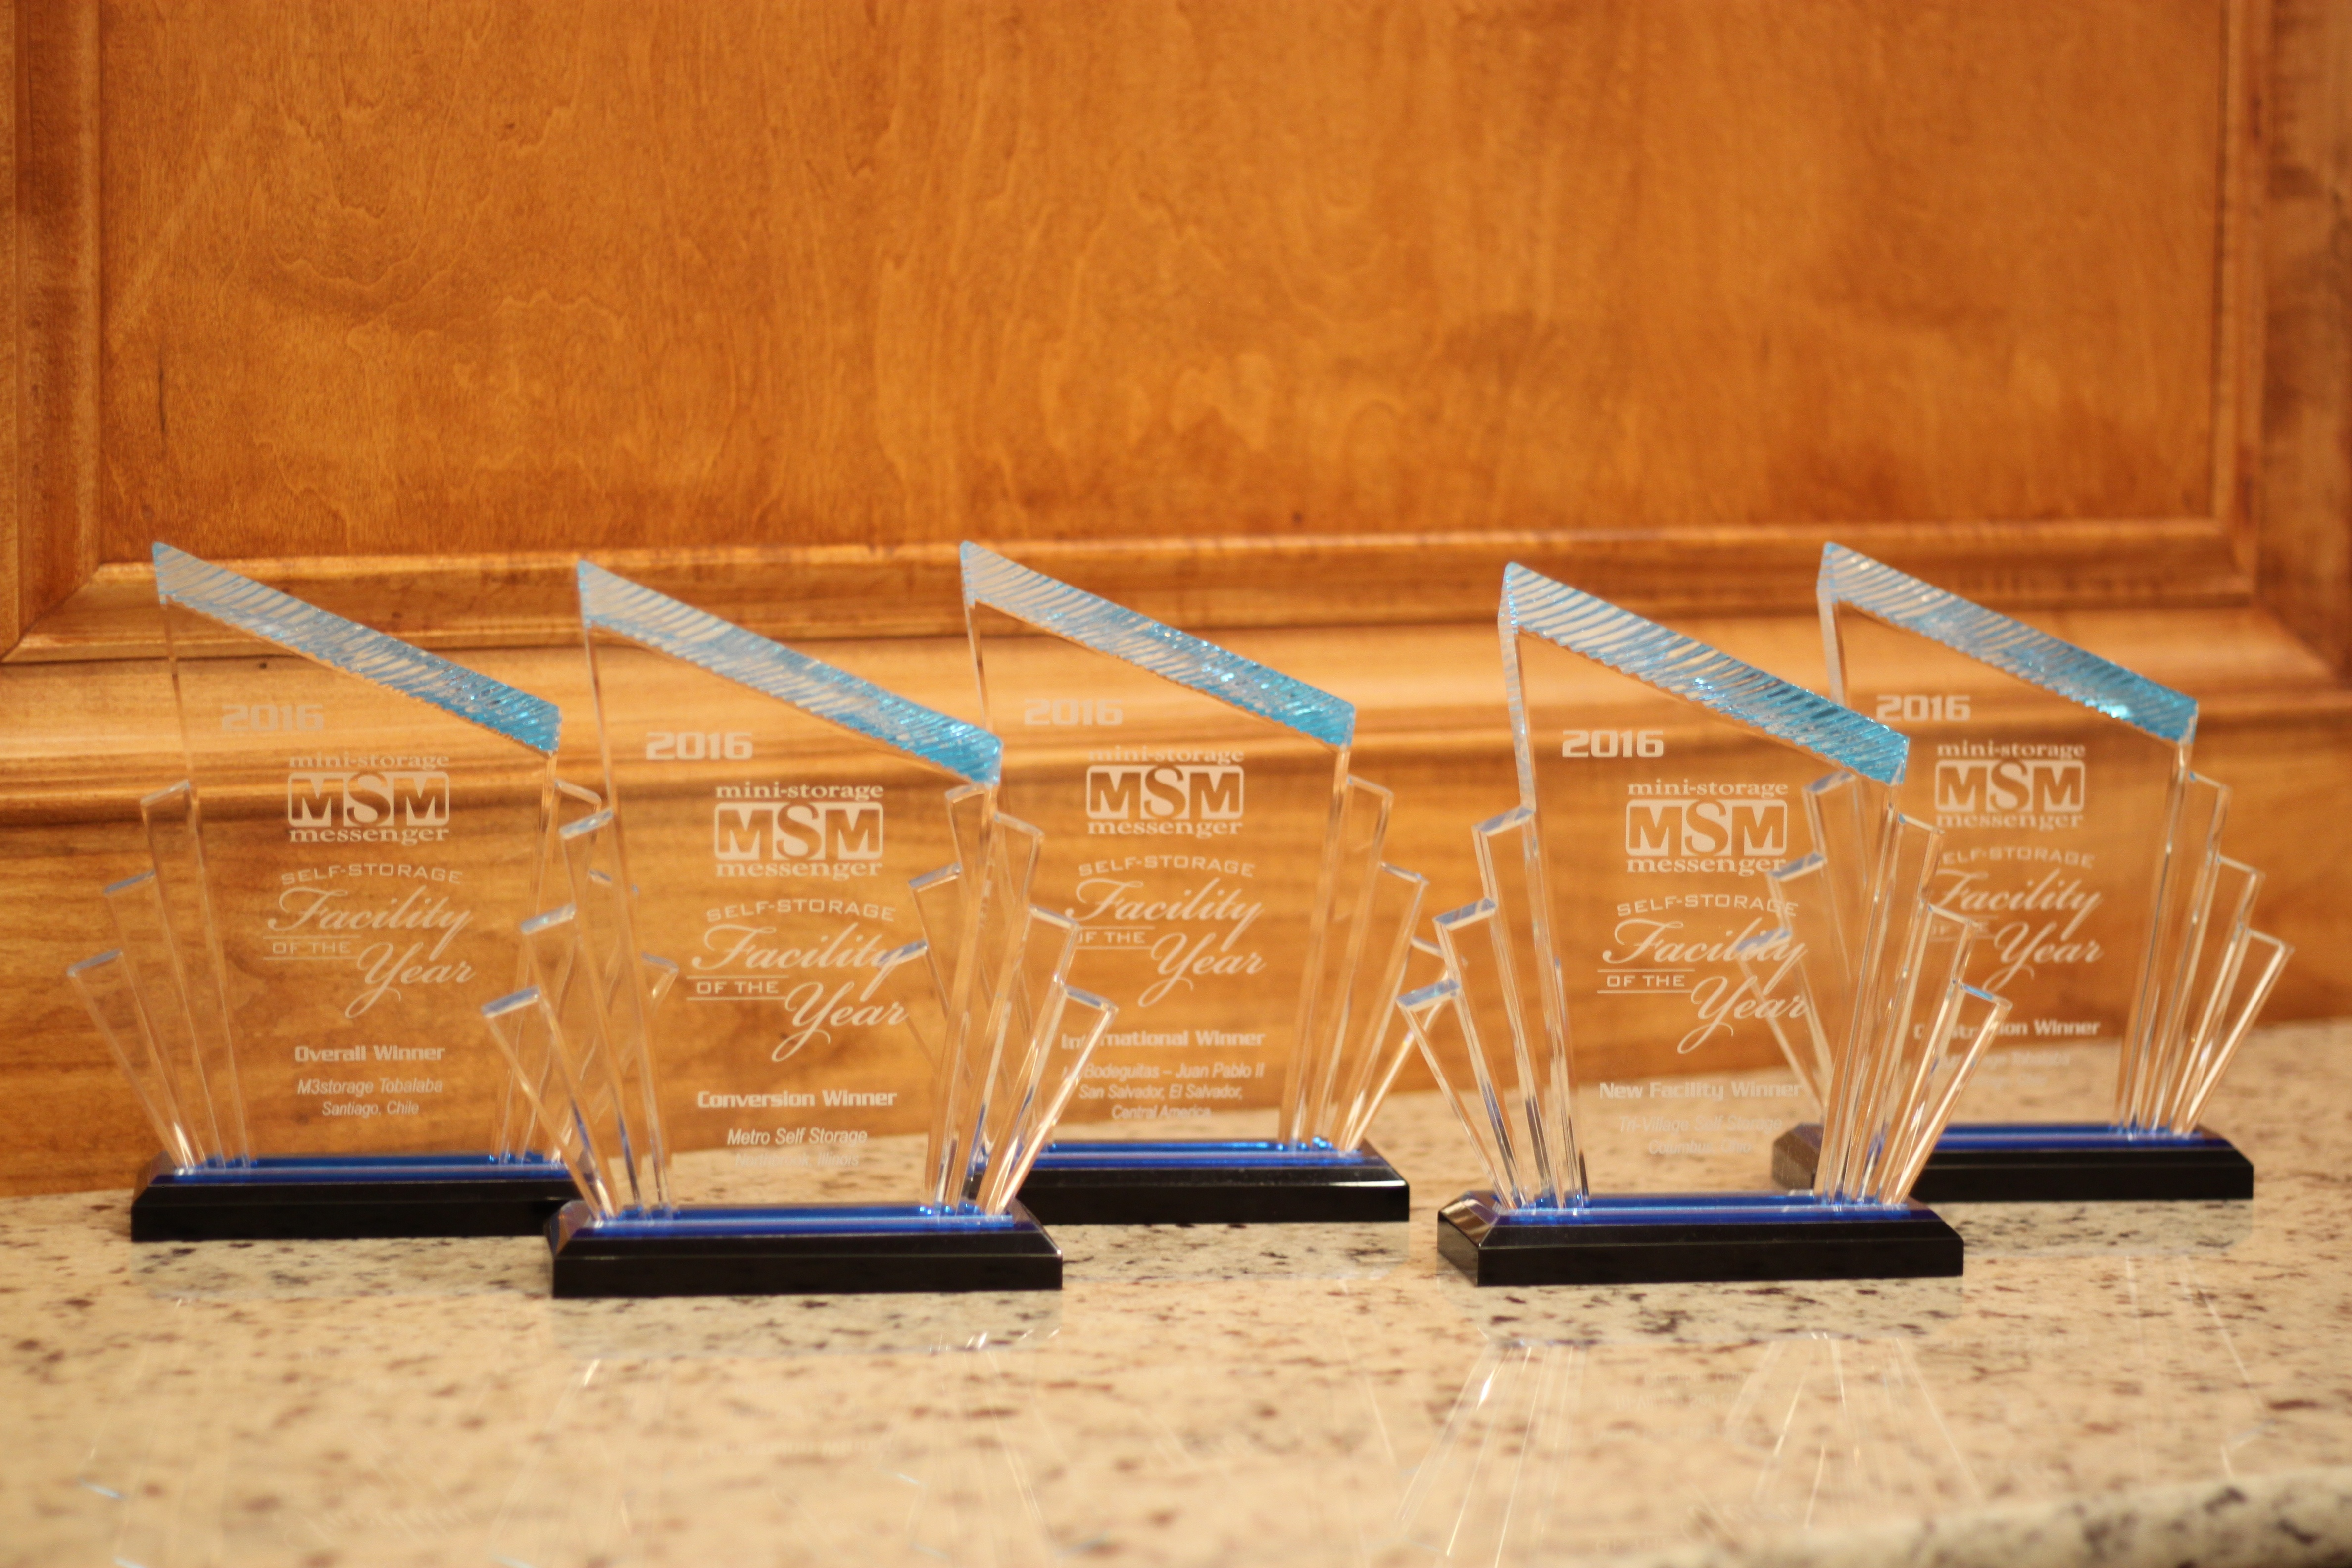 Mini Storage Messenger glass awards